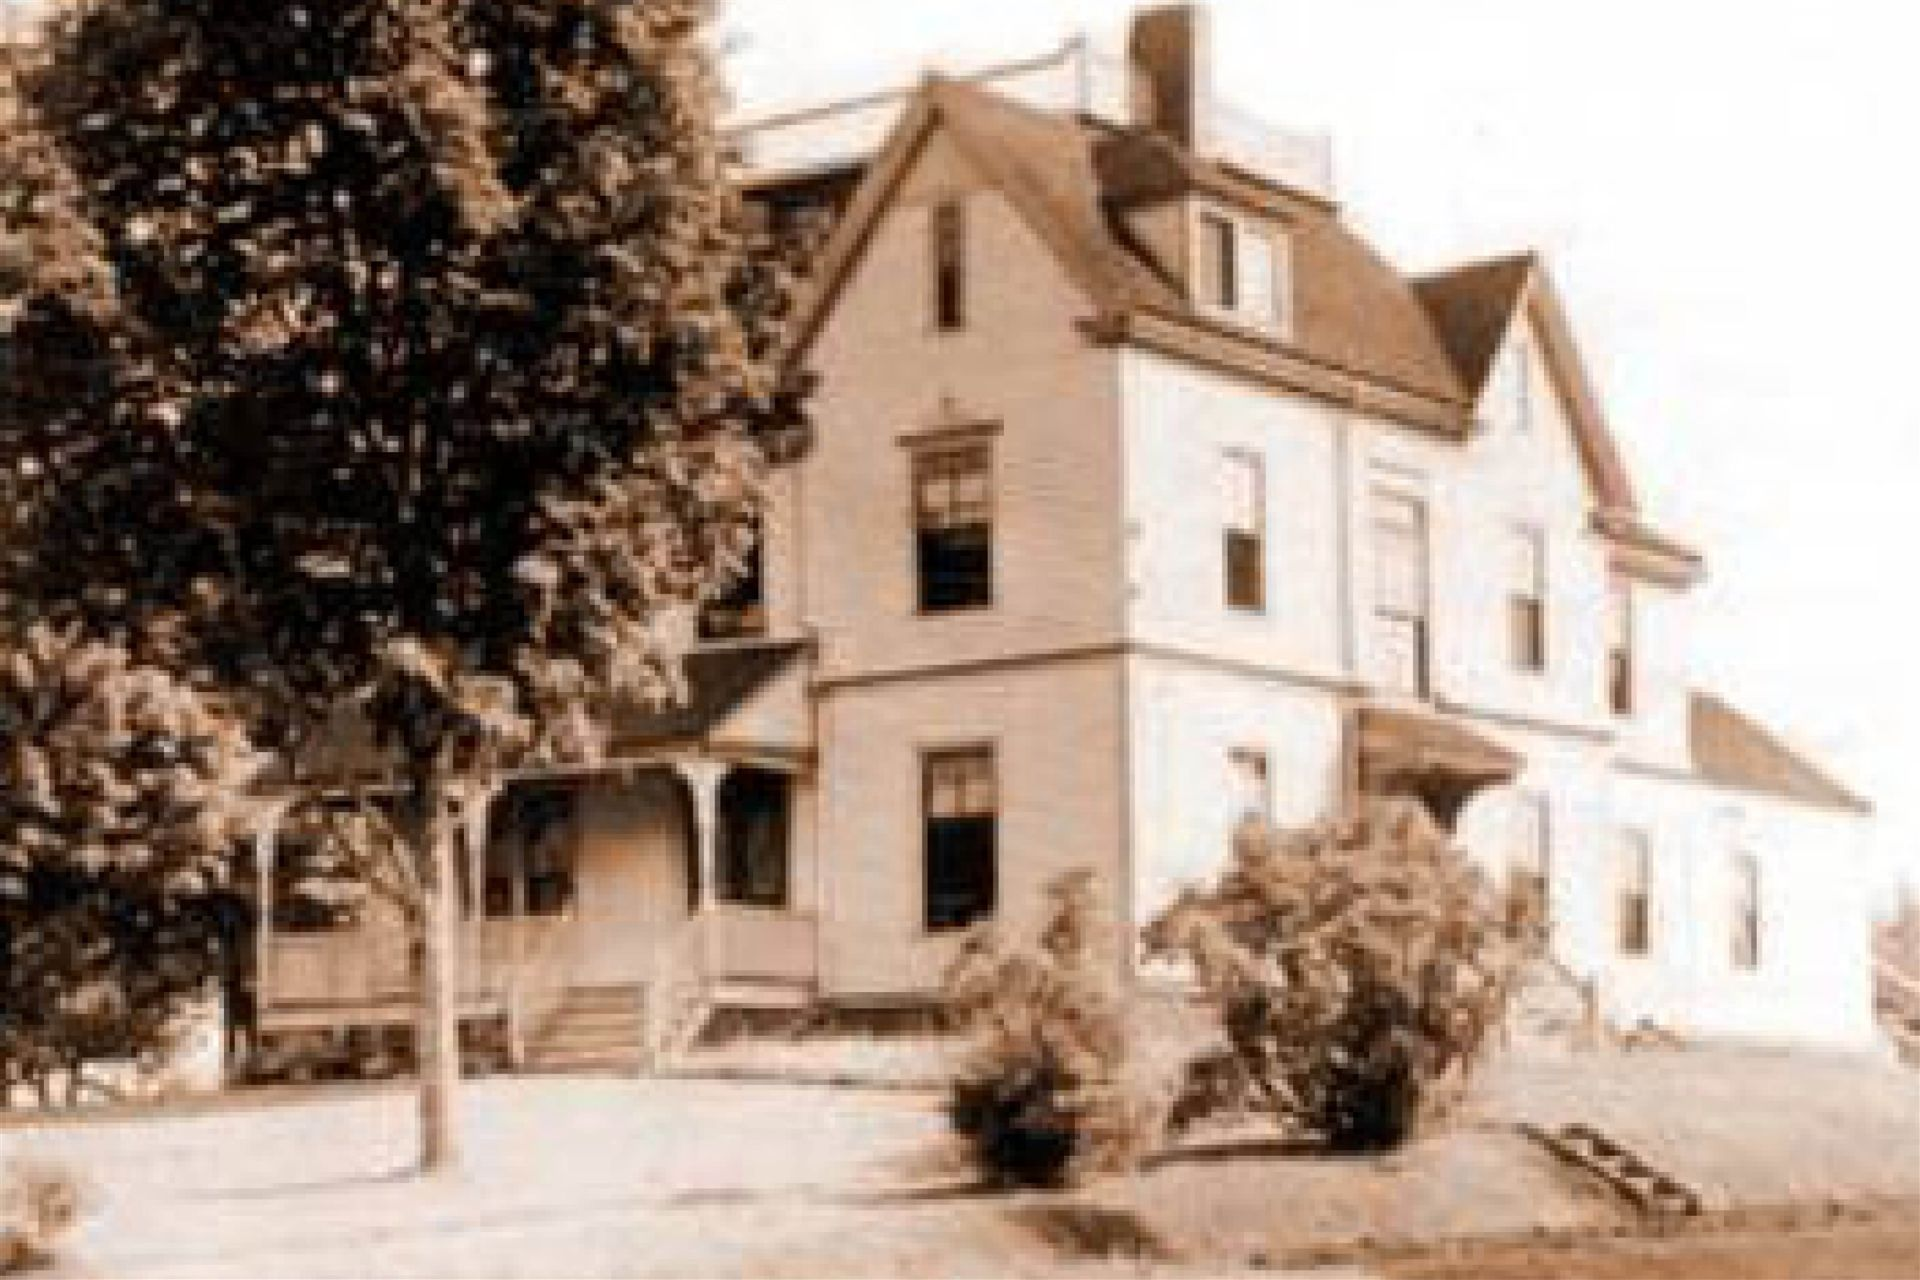 Blethen House, named after Alden Blethen who would go on to co-found the Seattle Times.